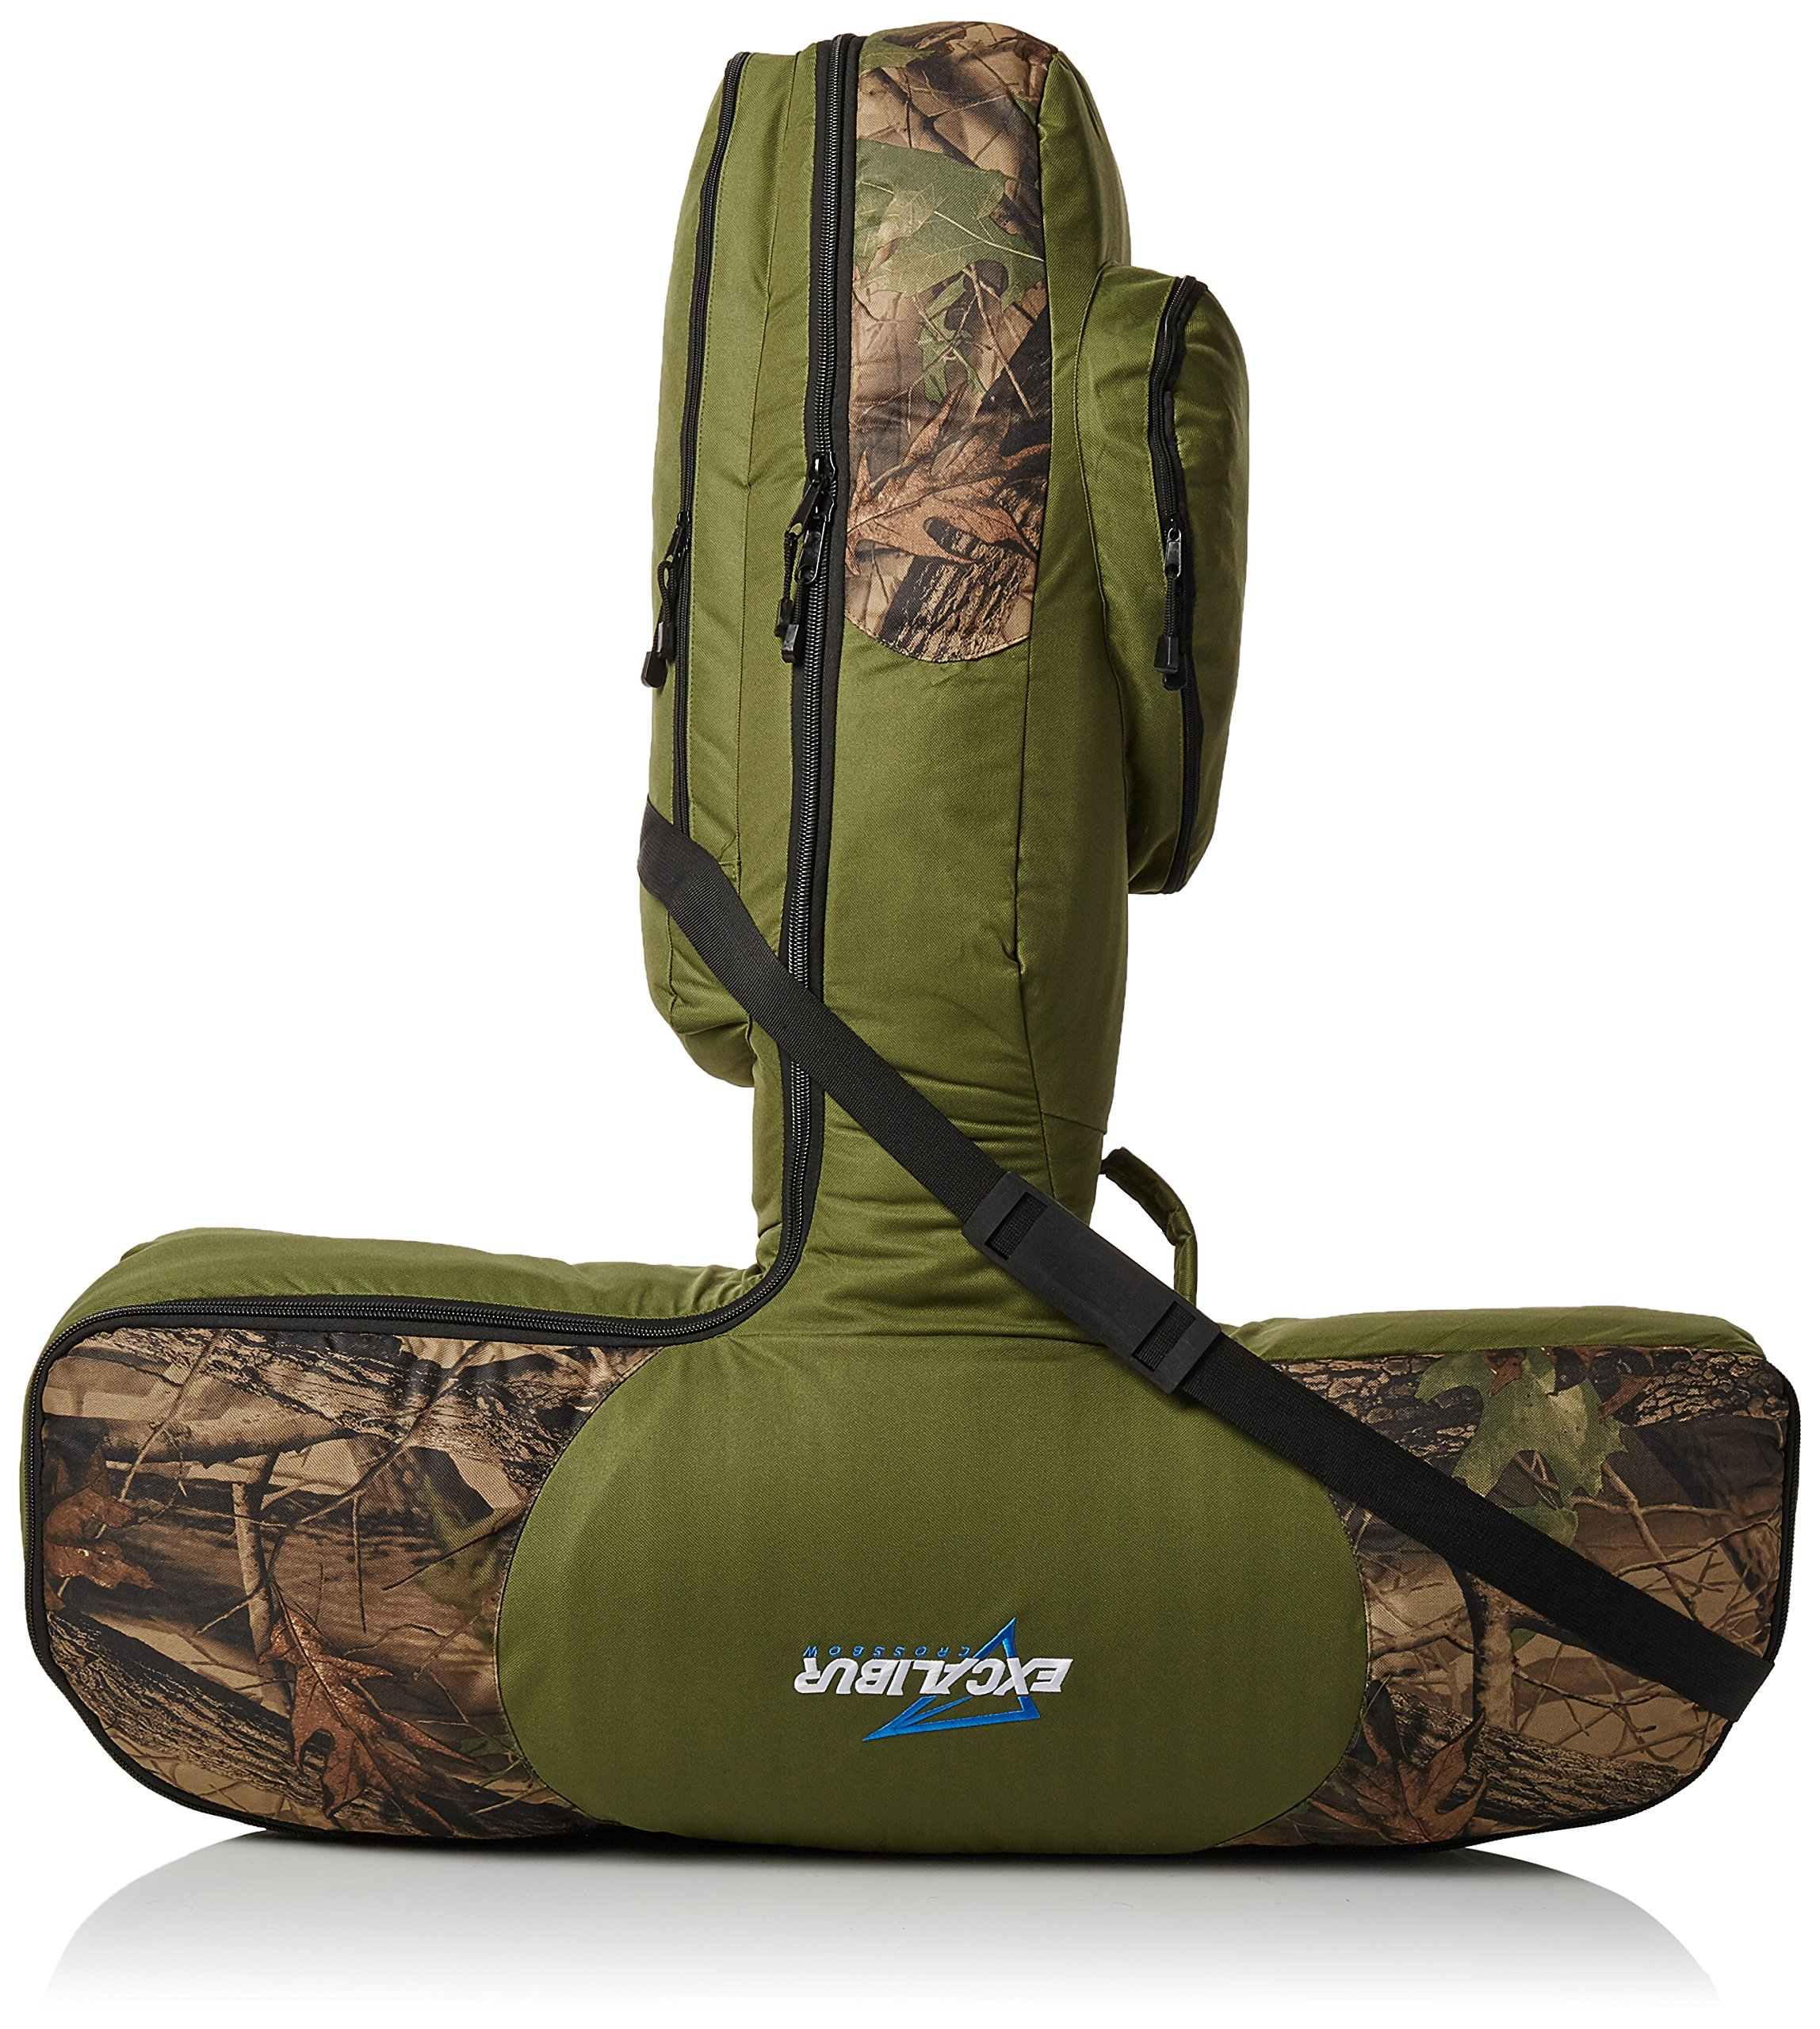 Excalibur Deluxe T-Form Padded Case Green/Camo